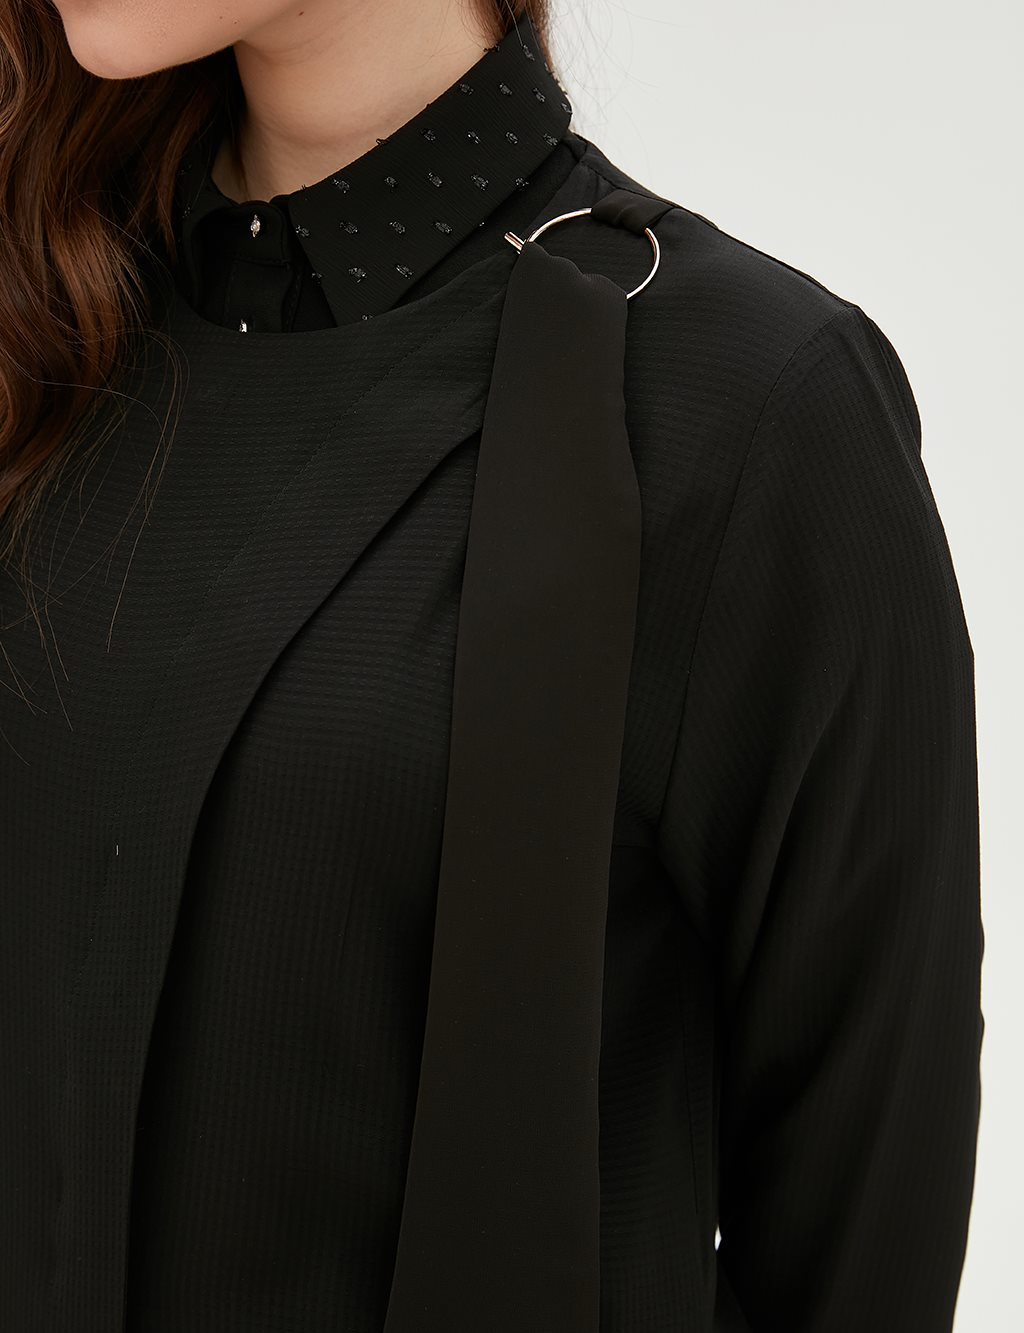 Collar Detailed Coat B20 25014 Black